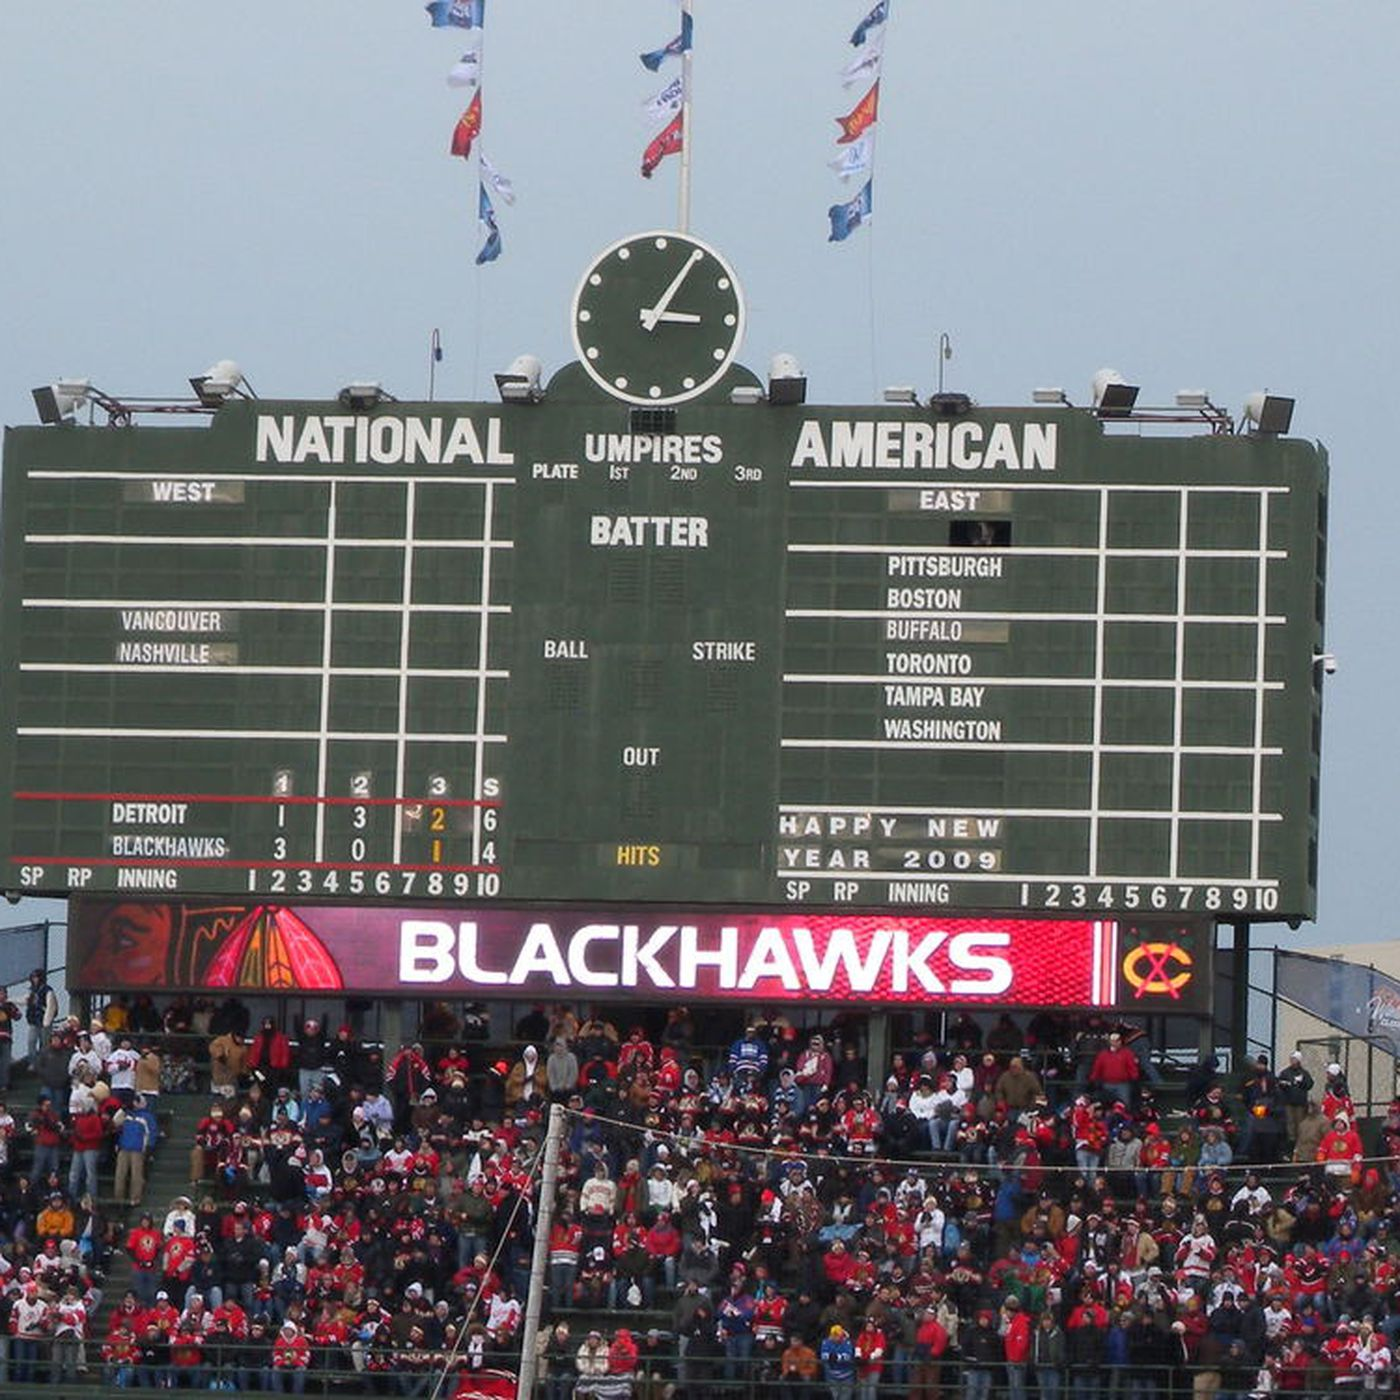 10 years ago today, the NHL's Winter Classic was at Wrigley